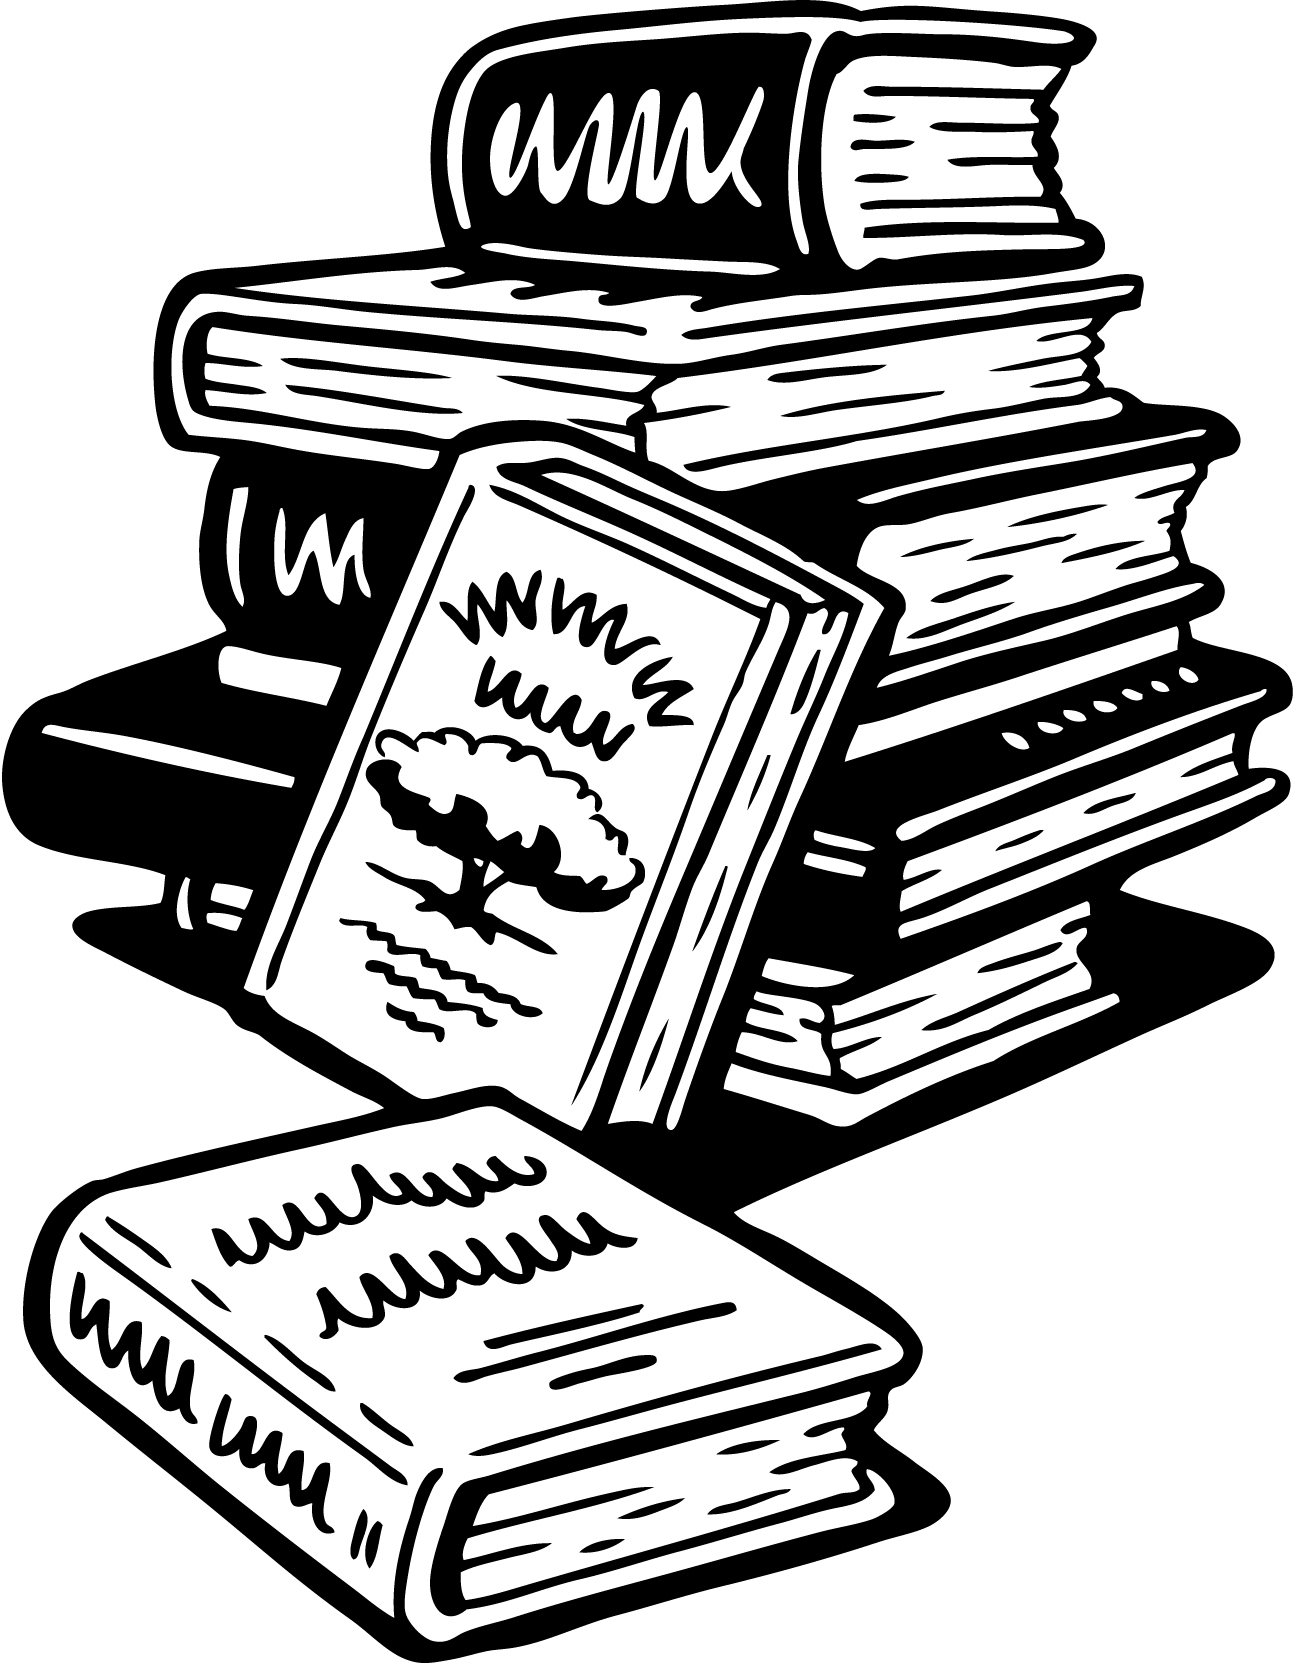 Stack of books clipart 4.